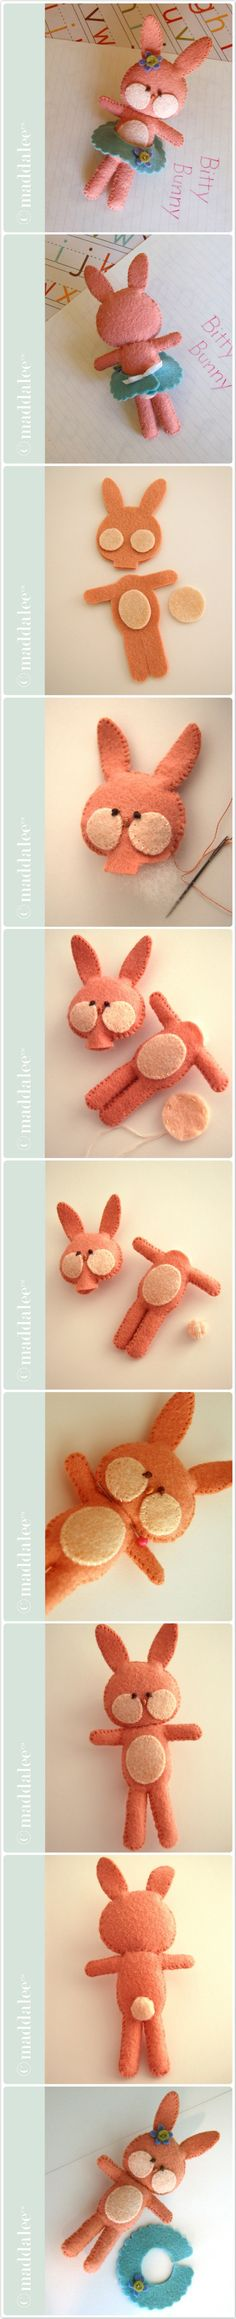 Bitty Bunny, Free Felt Bunny Pattern and Tutorial | From Maddalee